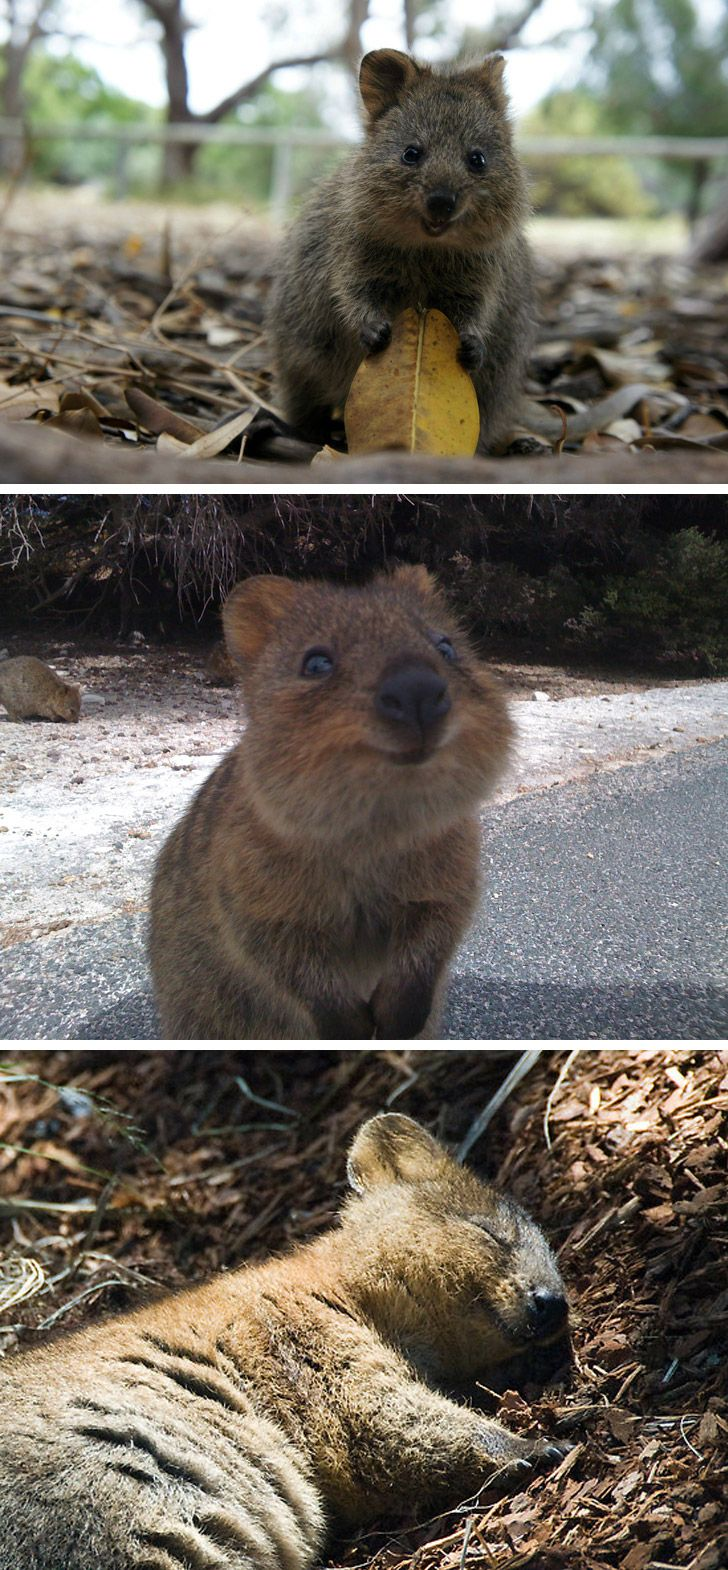 The quokka.